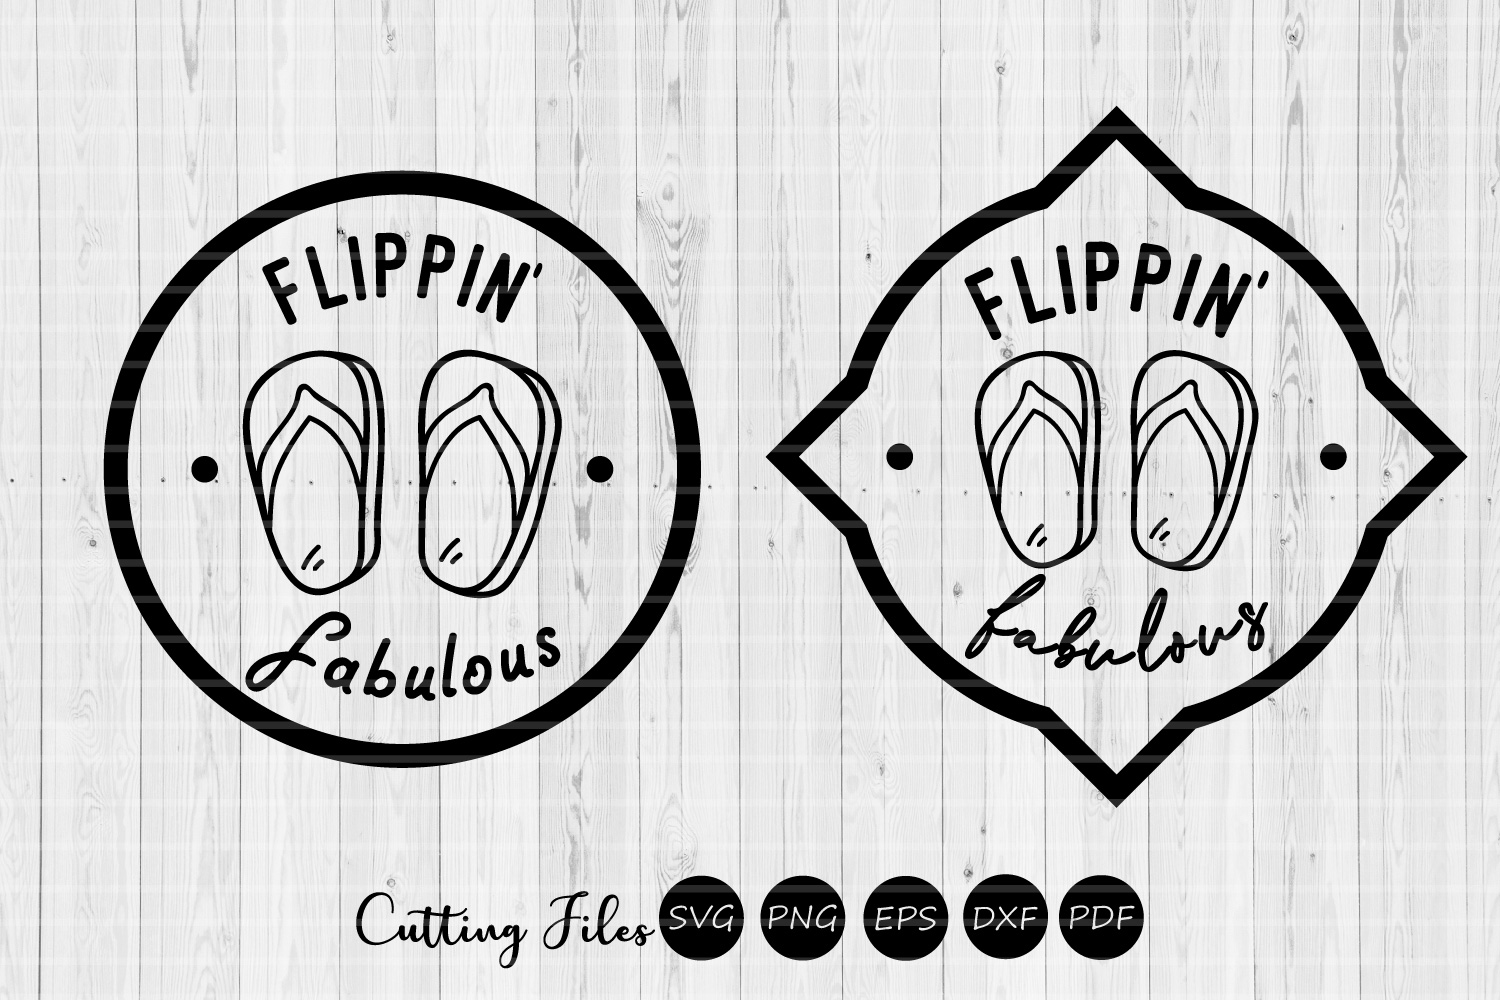 Download Free Flippin Fabulous Summer Svg Graphic By Hd Art Workshop for Cricut Explore, Silhouette and other cutting machines.